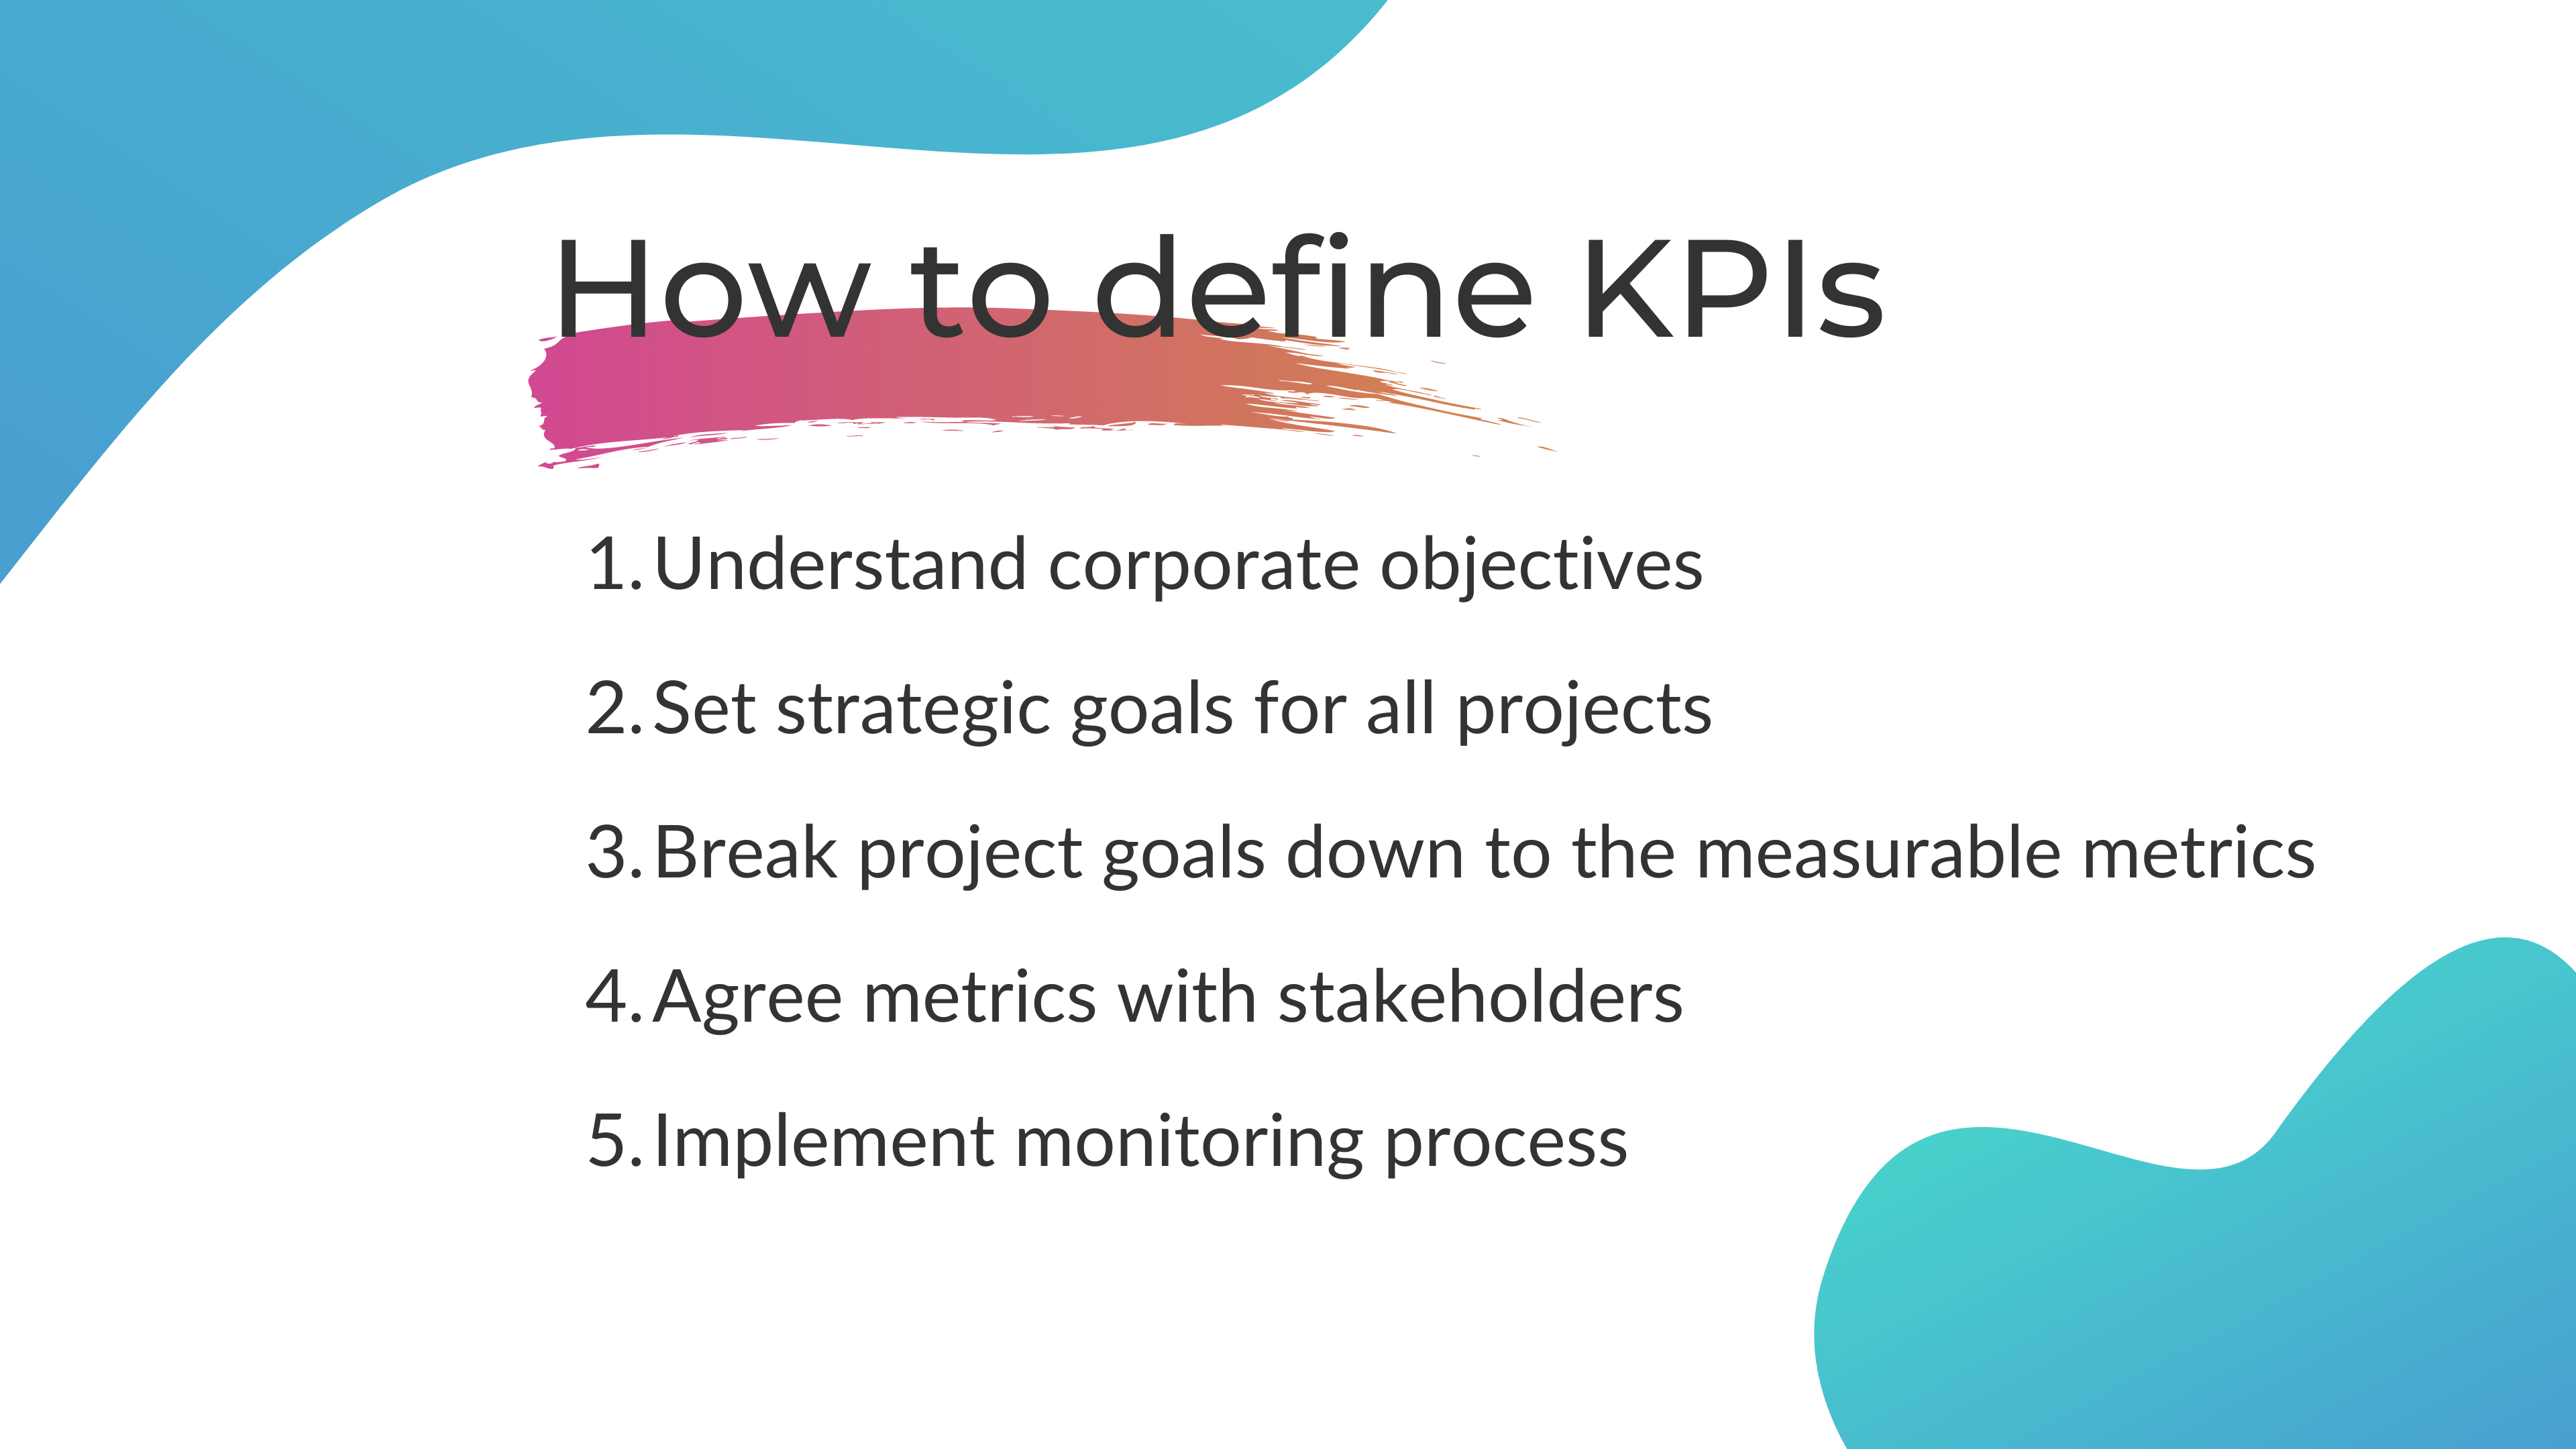 How to define KPIs for your project in 5 steps